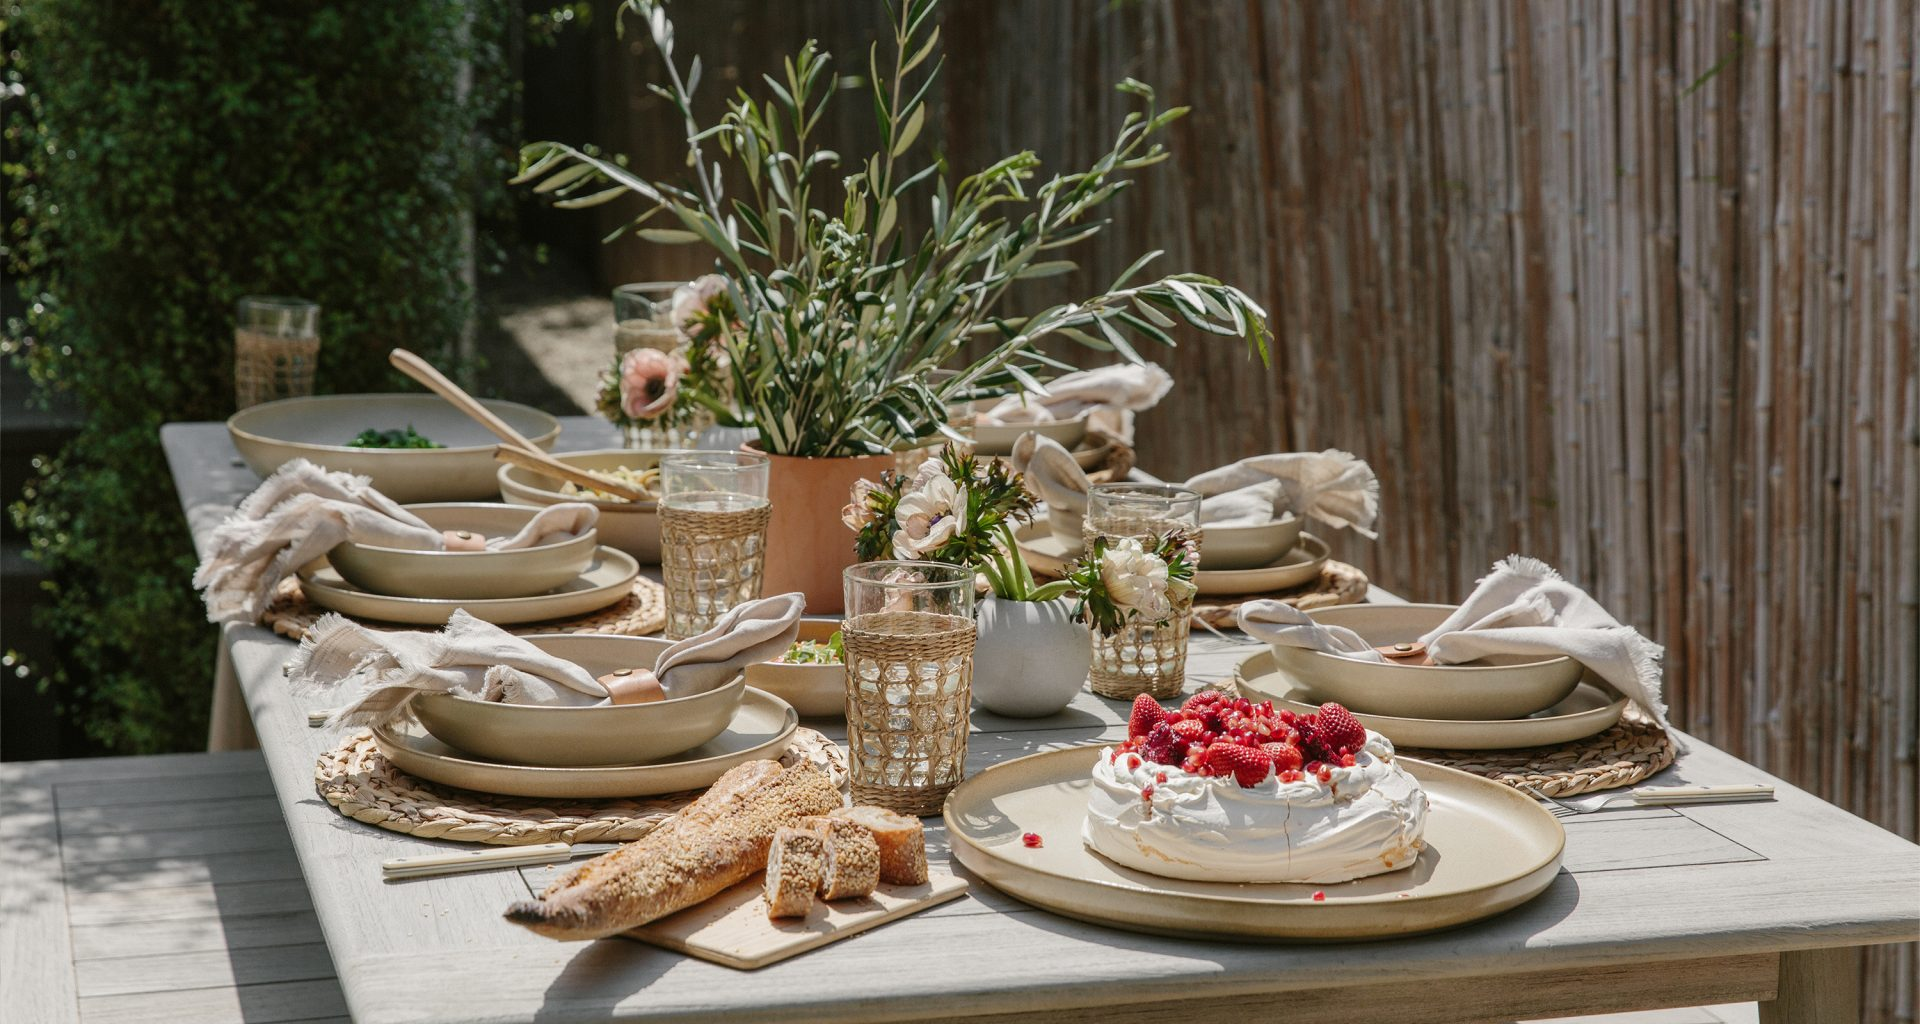 Serve This Spring Menu at Your Next Outdoor Dinner Party